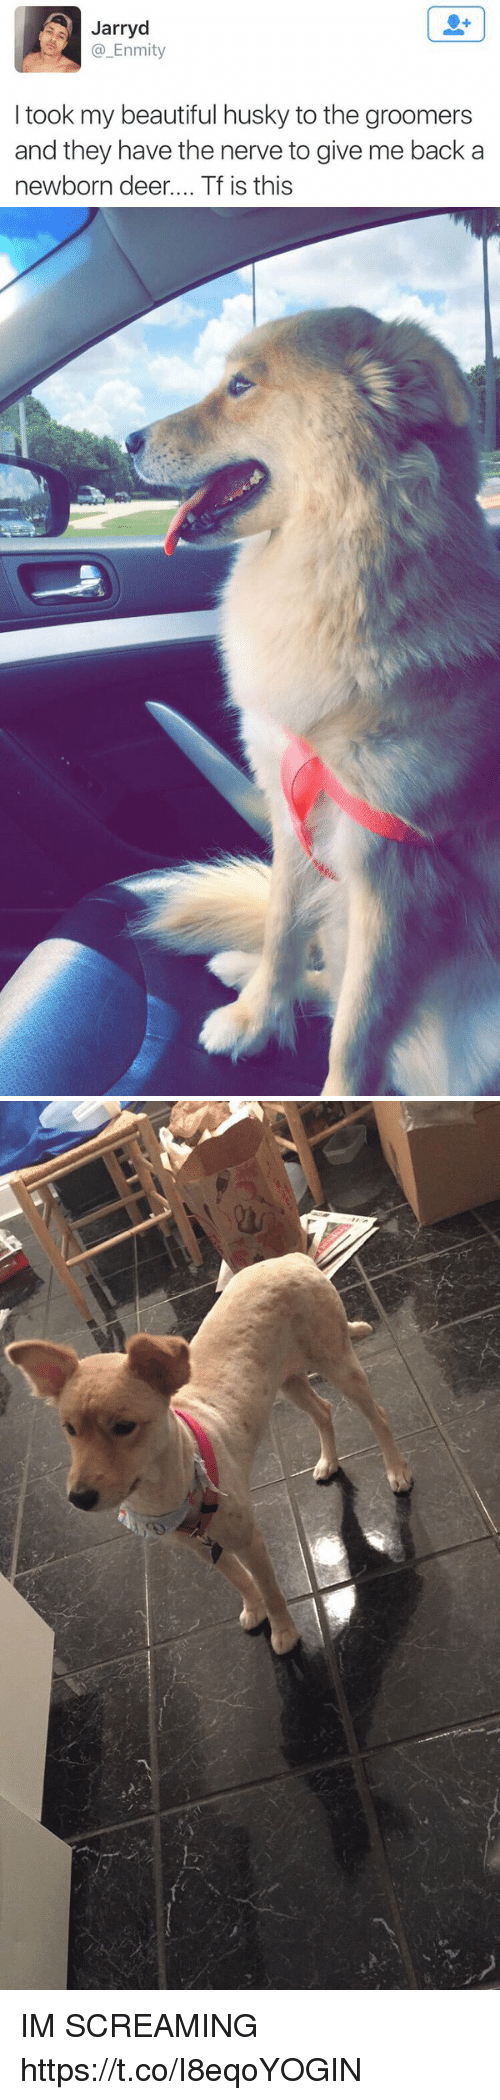 Groomers: Jarryd  @_Enmity  I took my beautiful husky to the groomers  and they have the nerve to give me back a  newborn deer.... Tf is this IM SCREAMING https://t.co/I8eqoYOGIN